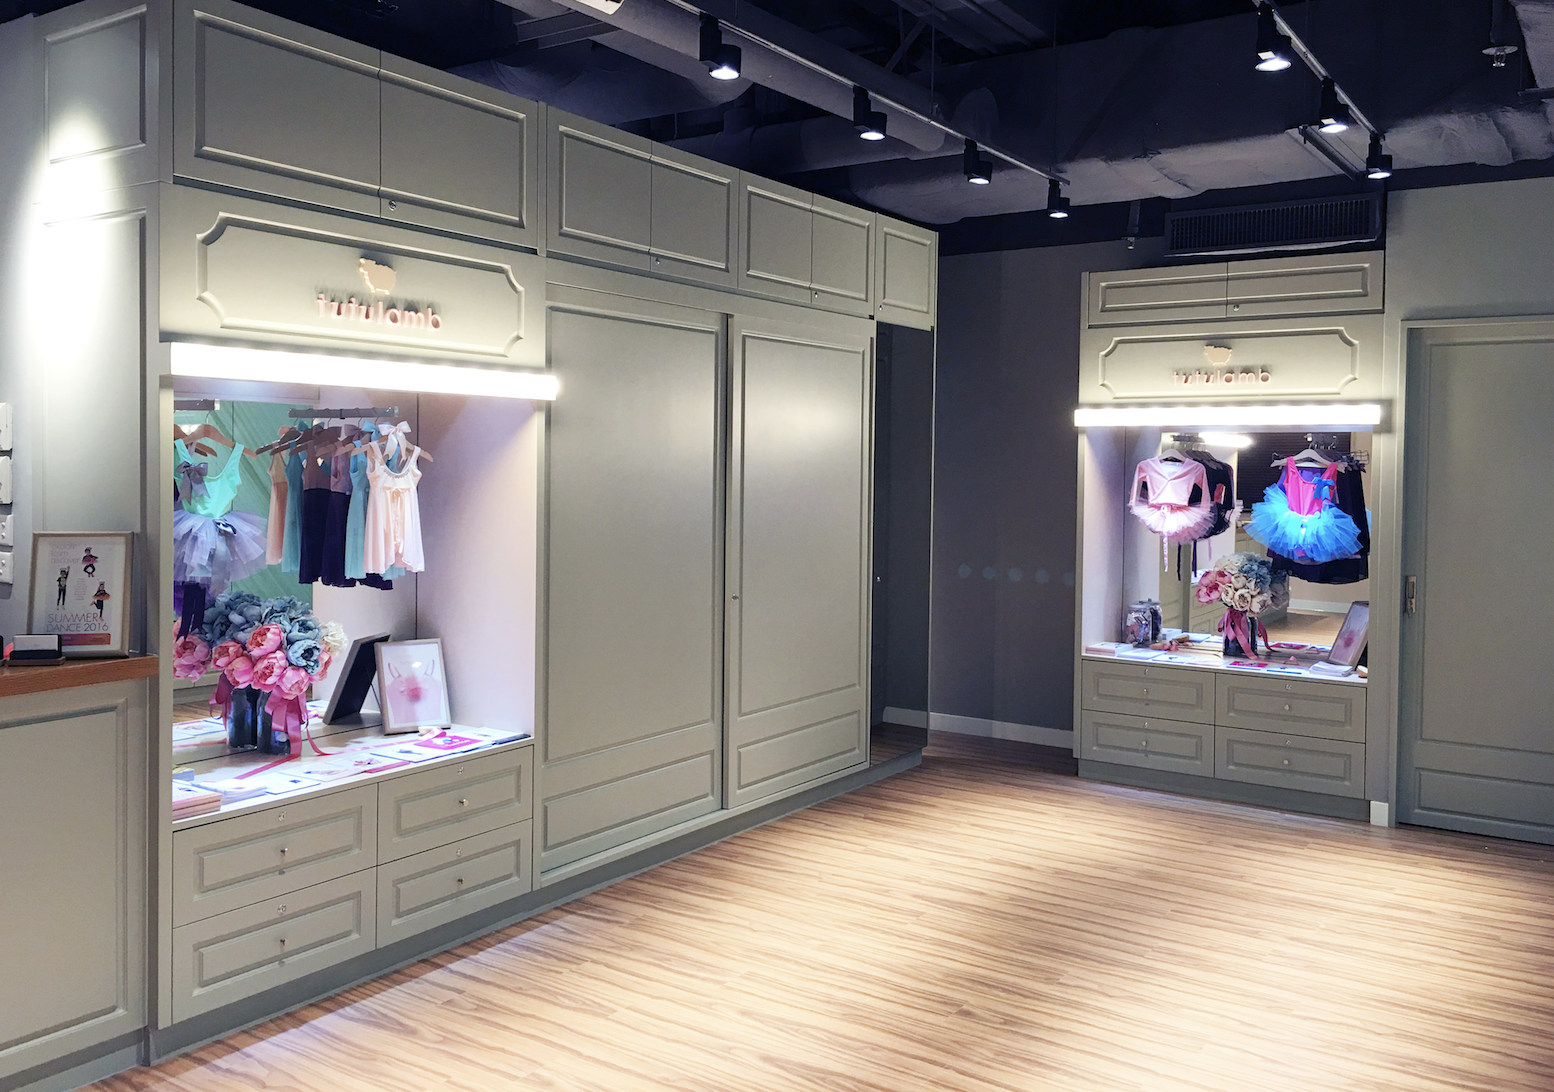 """TUTULAMB     Address :  CENTRAL : 4F, 8F, Lansing House, 41-47 Queen's Road Central. CAUSEWAY BAY : 9F, Capital Commercial Building, 26 Leighton Road. WONG CHUK HANG :Shop 311 One Island South 2 Heung Yip Road.                        Tel : (Central)6608 6689/(Wong Chuk Hang)6608 1928/(Causeway Bay)6608 1699  Email :  info@tutulamb.com   Website :  http://tutulamb.com   Facebook page :  https://www.facebook.com/tutulamb   Tutulamb equals """"not your average dance apparel!"""" From your kids' favourite colours and most adorable designs perfect for kids looking just like a prince/princess fresh out the storybooks without hurting your budget. Exquisite designs like no other you could find in Hong Kong. But of course, they do have the basics as well, just like ballet uniforms you'd need in simple and solid colours. Did I mention they have a line for adults too? Well, they do! Leotards, tights, ballet shoes, wrap skirts, they have them as well for adults. Where else could you look? The best part is that their location is super convenient and accessible. I know right? Quite a lot! That's alright because they have a friendly and knowledgeable staff willing to help you find the best one for you and/or your kid!"""